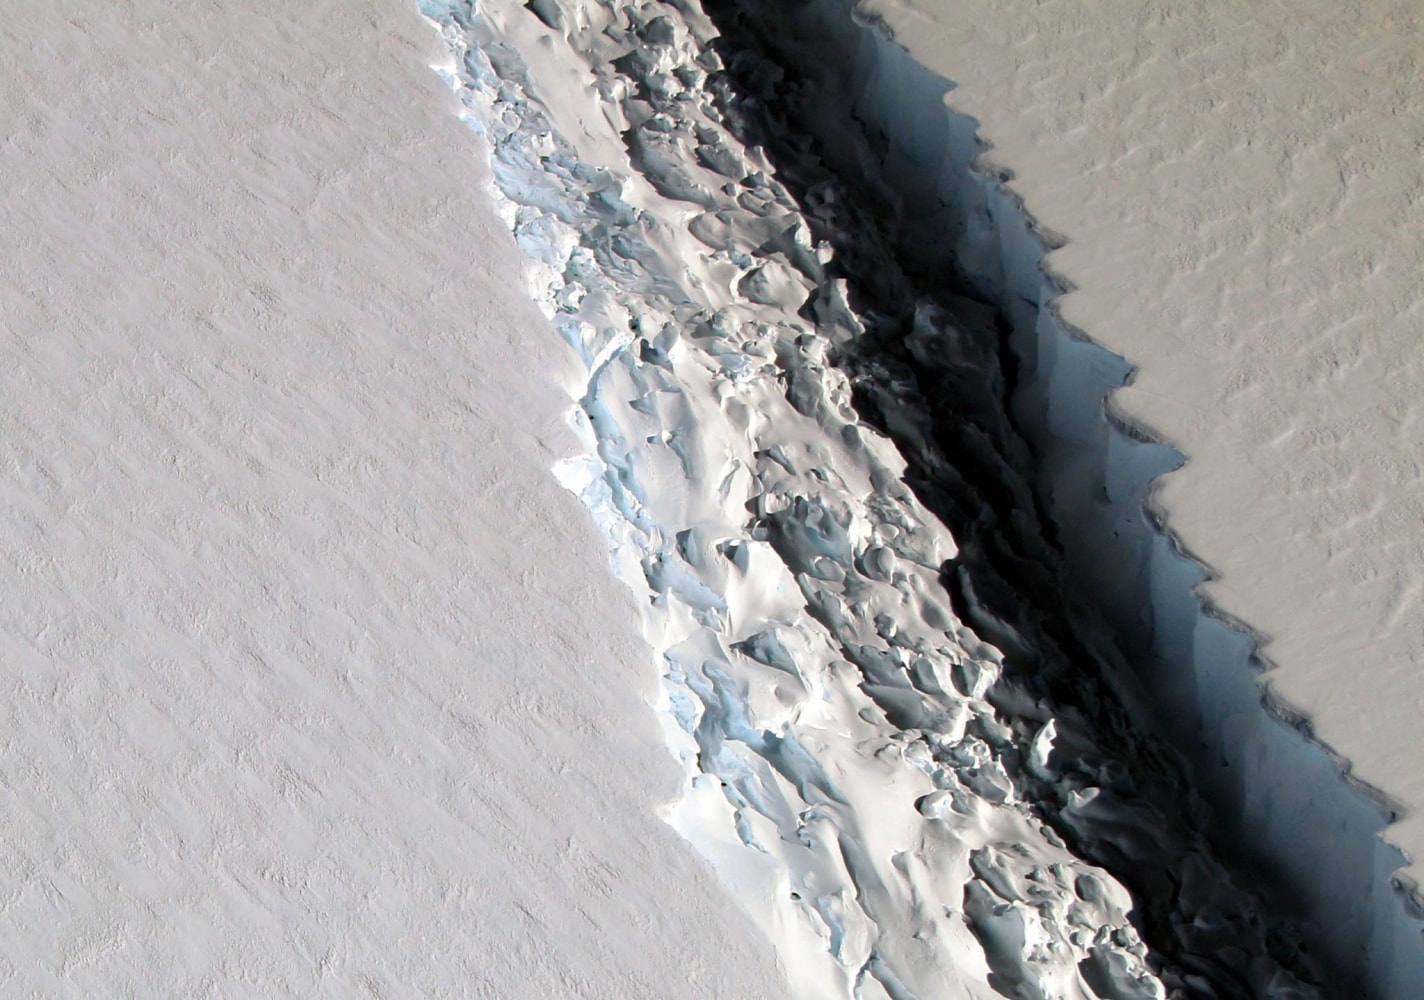 Vast iceberg set to break free from Antarctic ice shelf